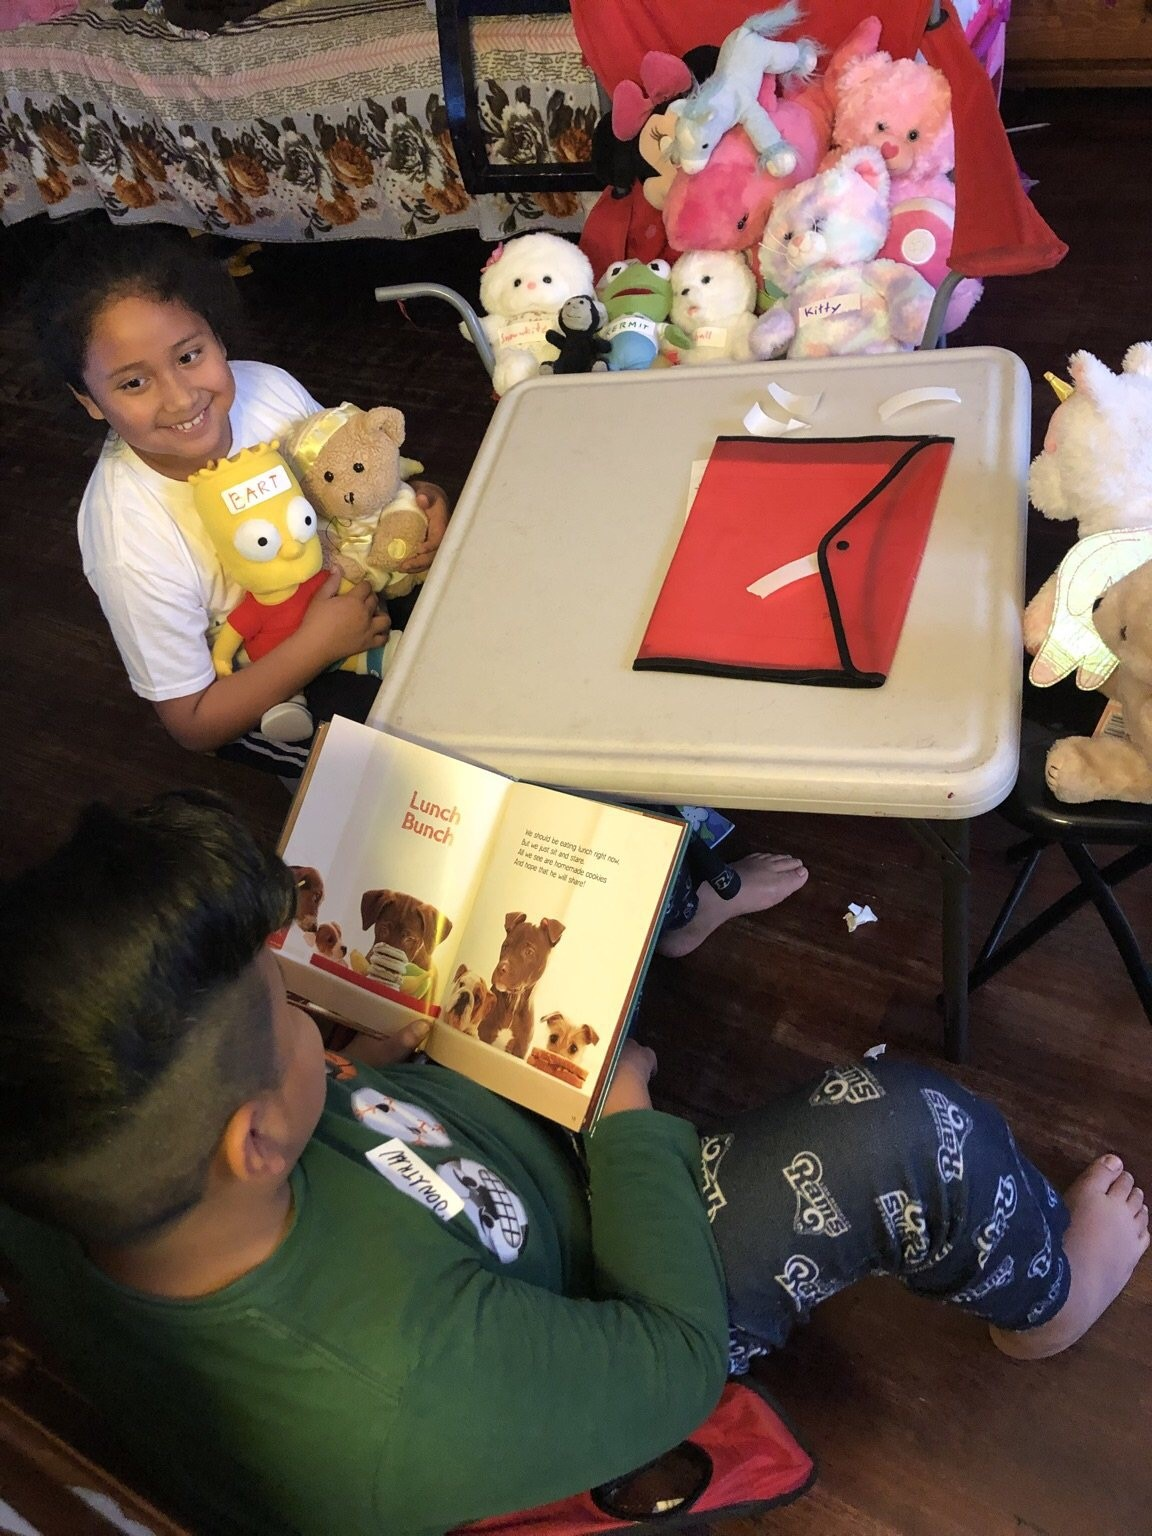 A brother and sister recreate a Reading to Kids reading club at home